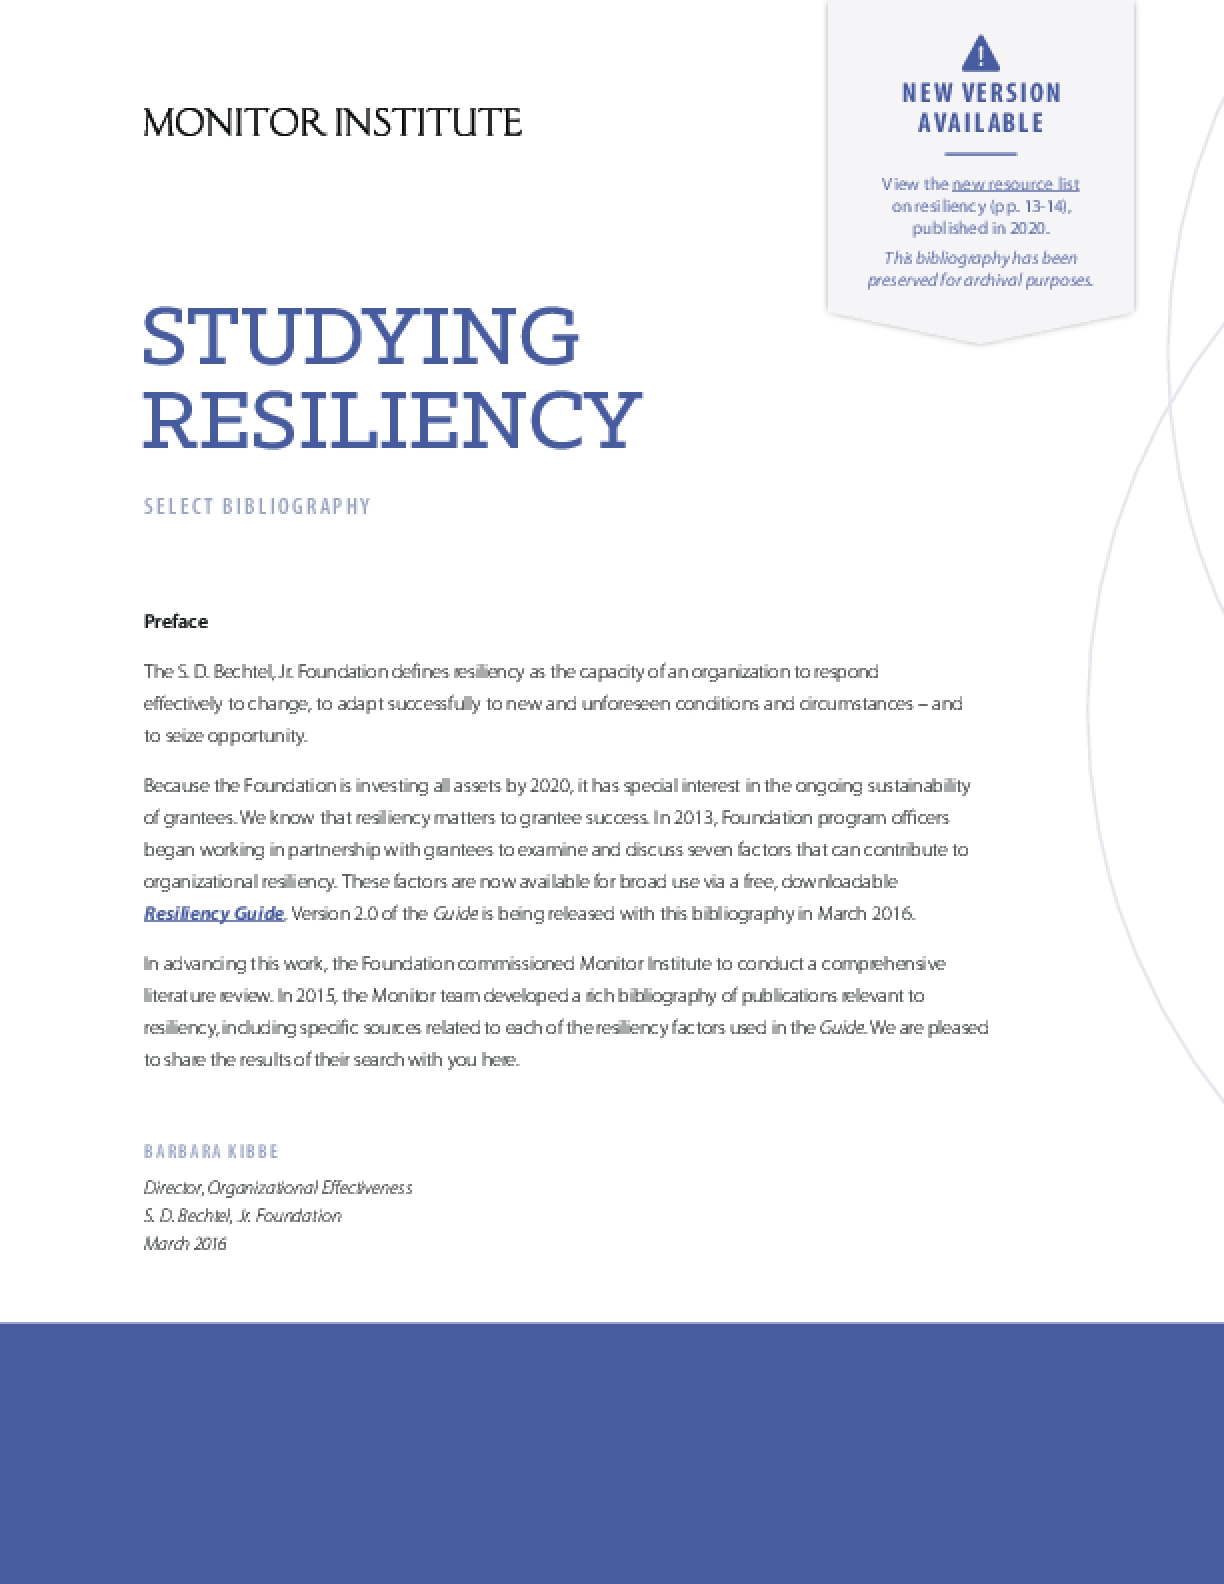 Studying Resiliency: Select Bibilography